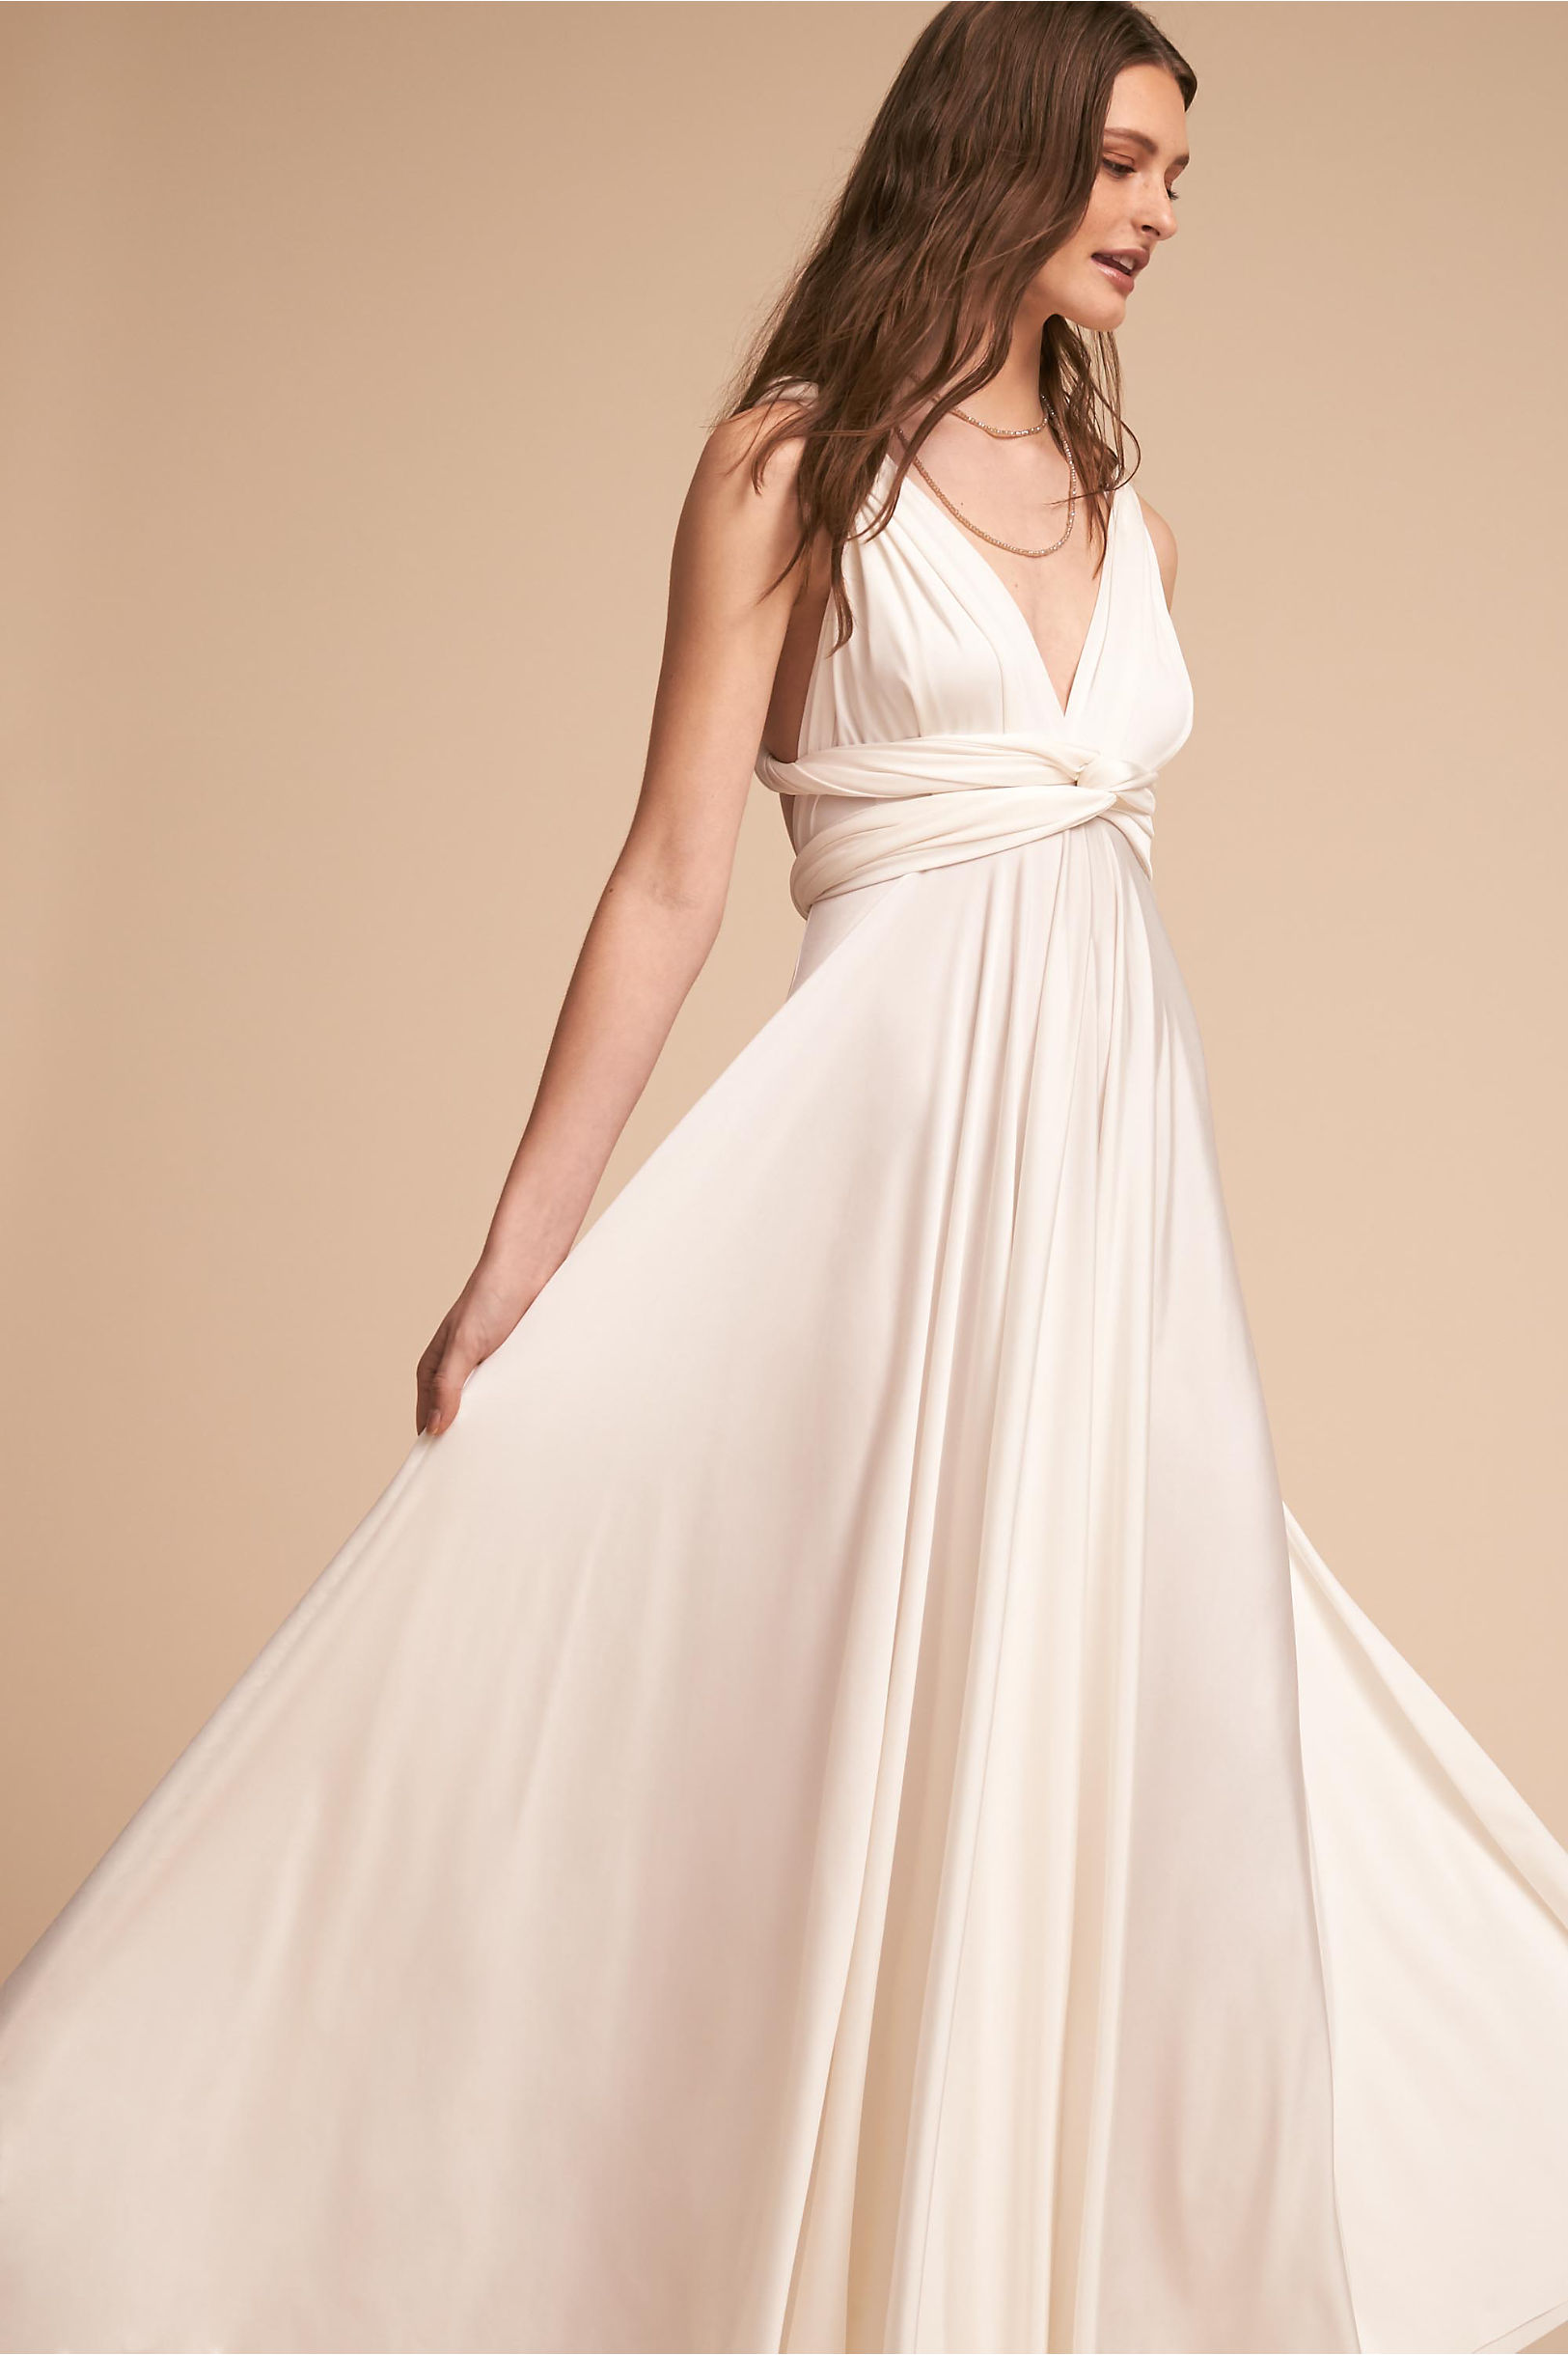 Ginger Convertible Maxi Dress White in Bride | BHLDN